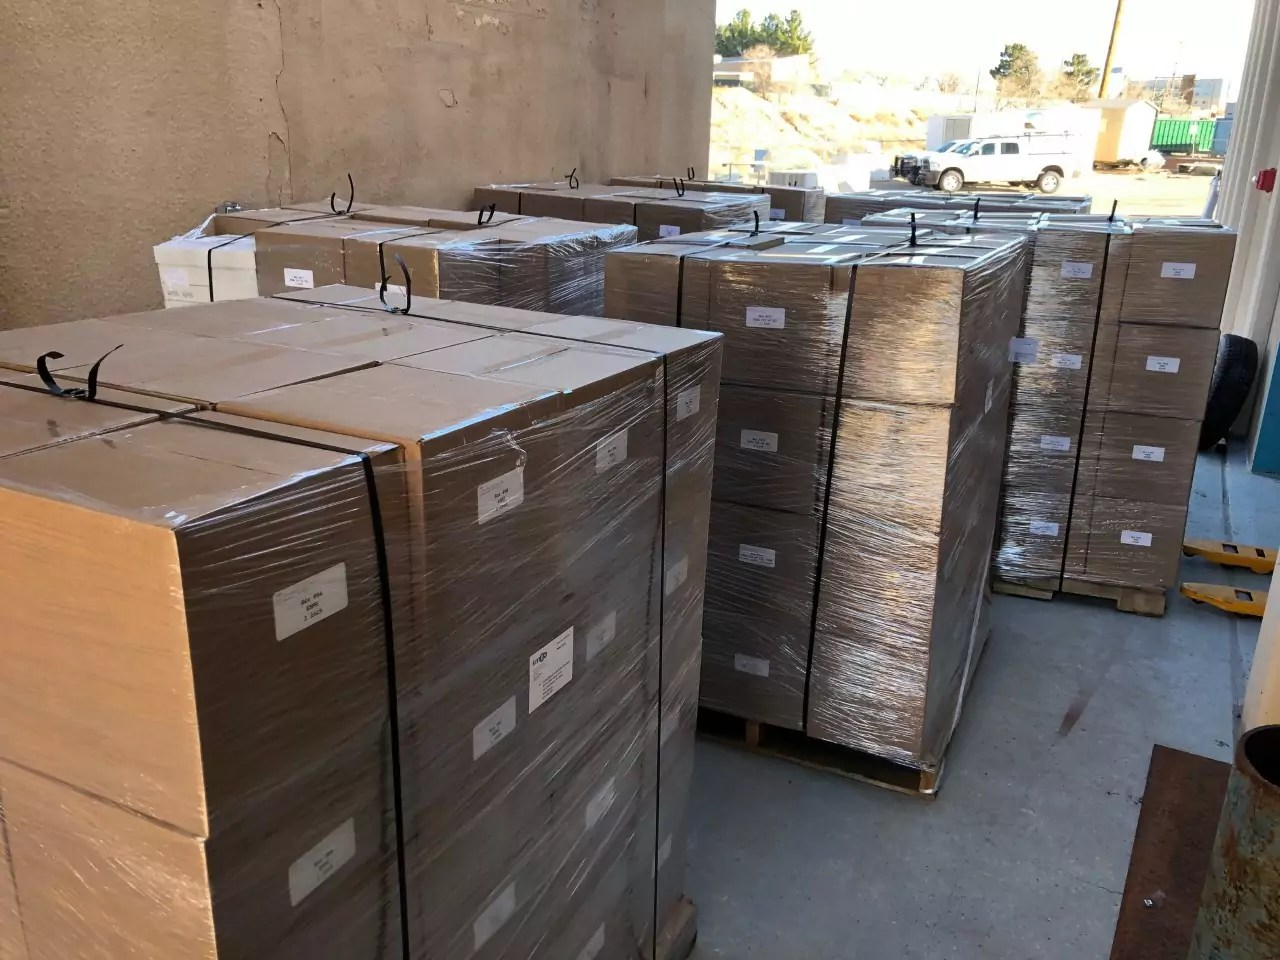 Pallets carrying shrink-wrapped boxes stand ready for processing.